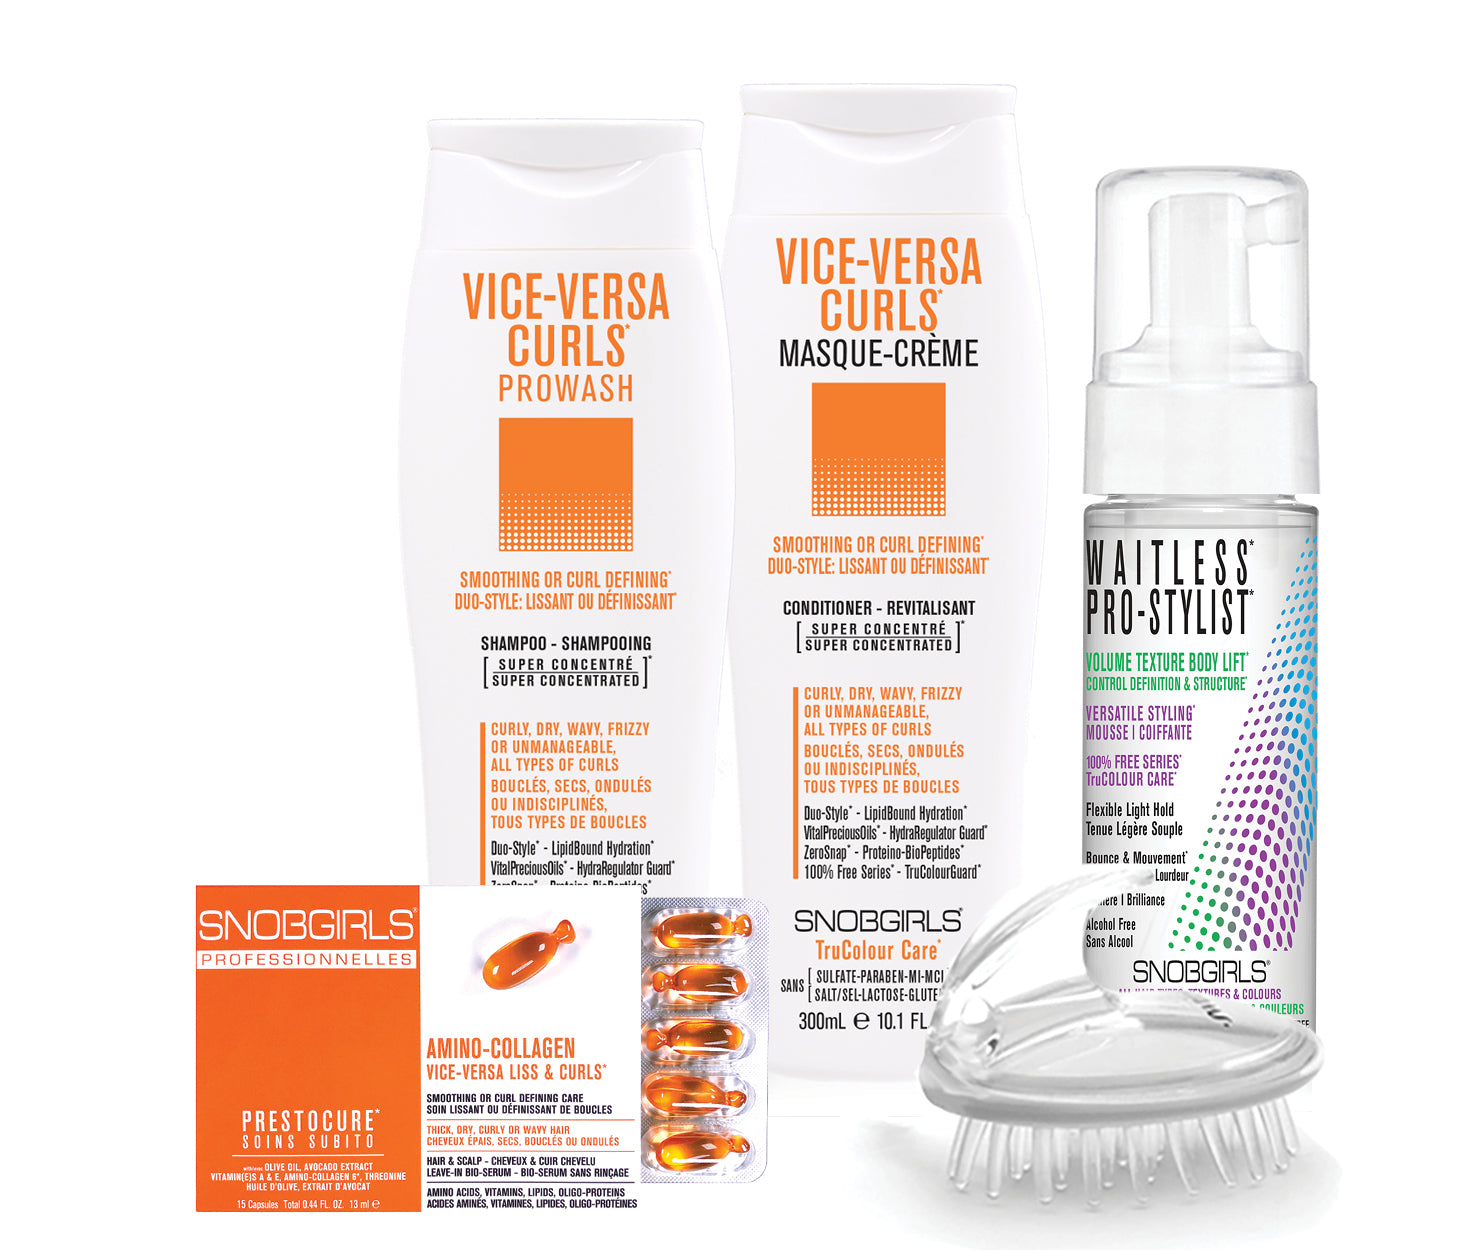 VICE-VERSA CURLS BOX DUO-STYLE: SMOOTHING OR CURL DEFINING Bundle